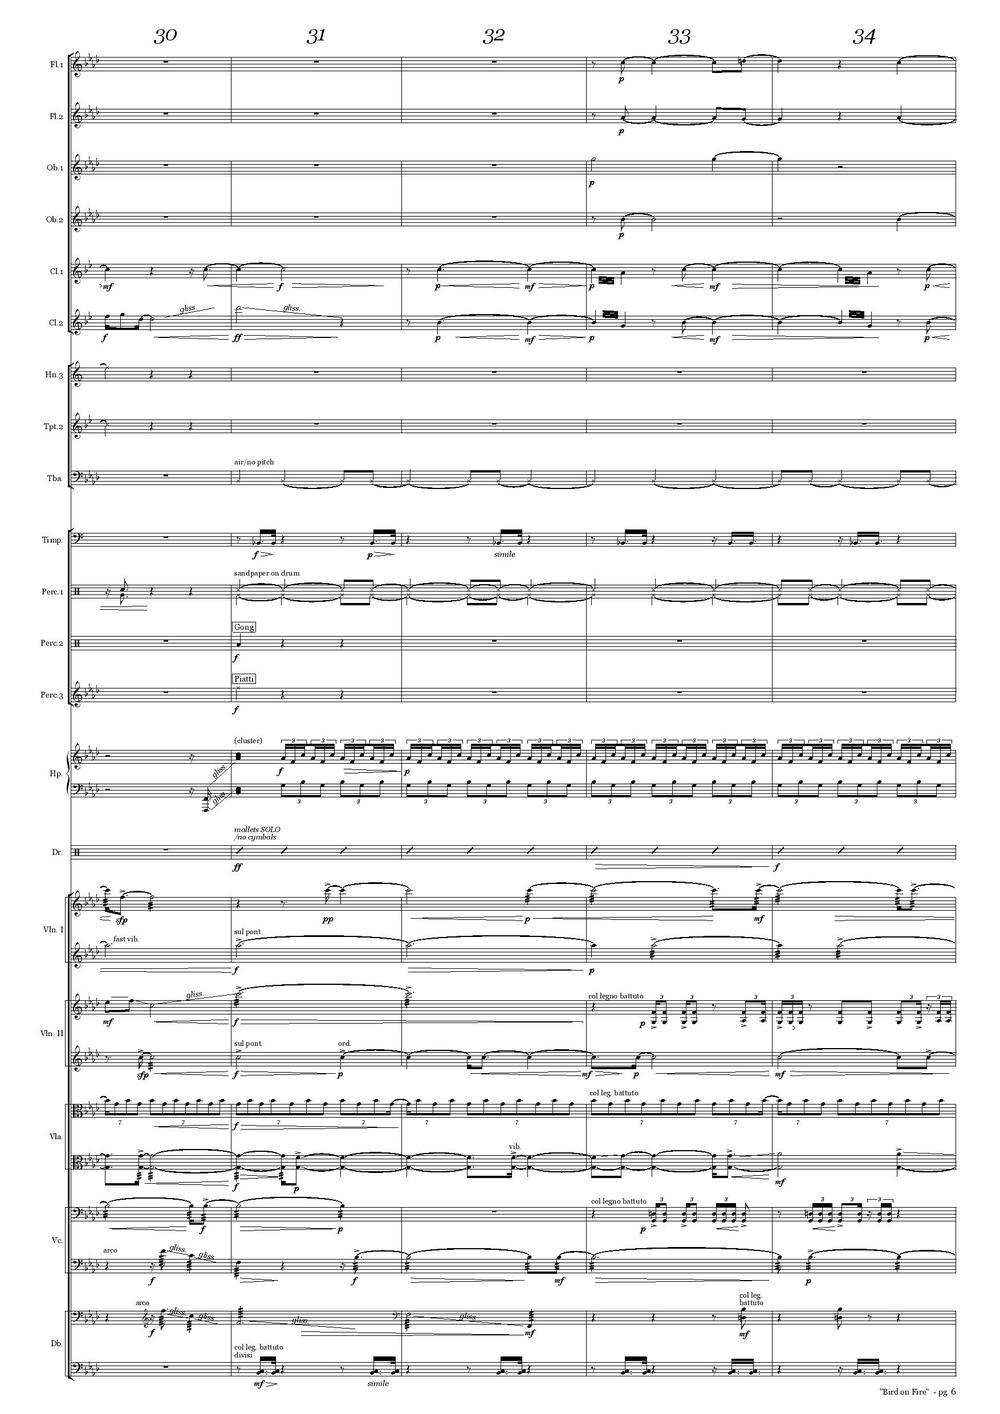 Bird on Fire - score-page-009.jpg